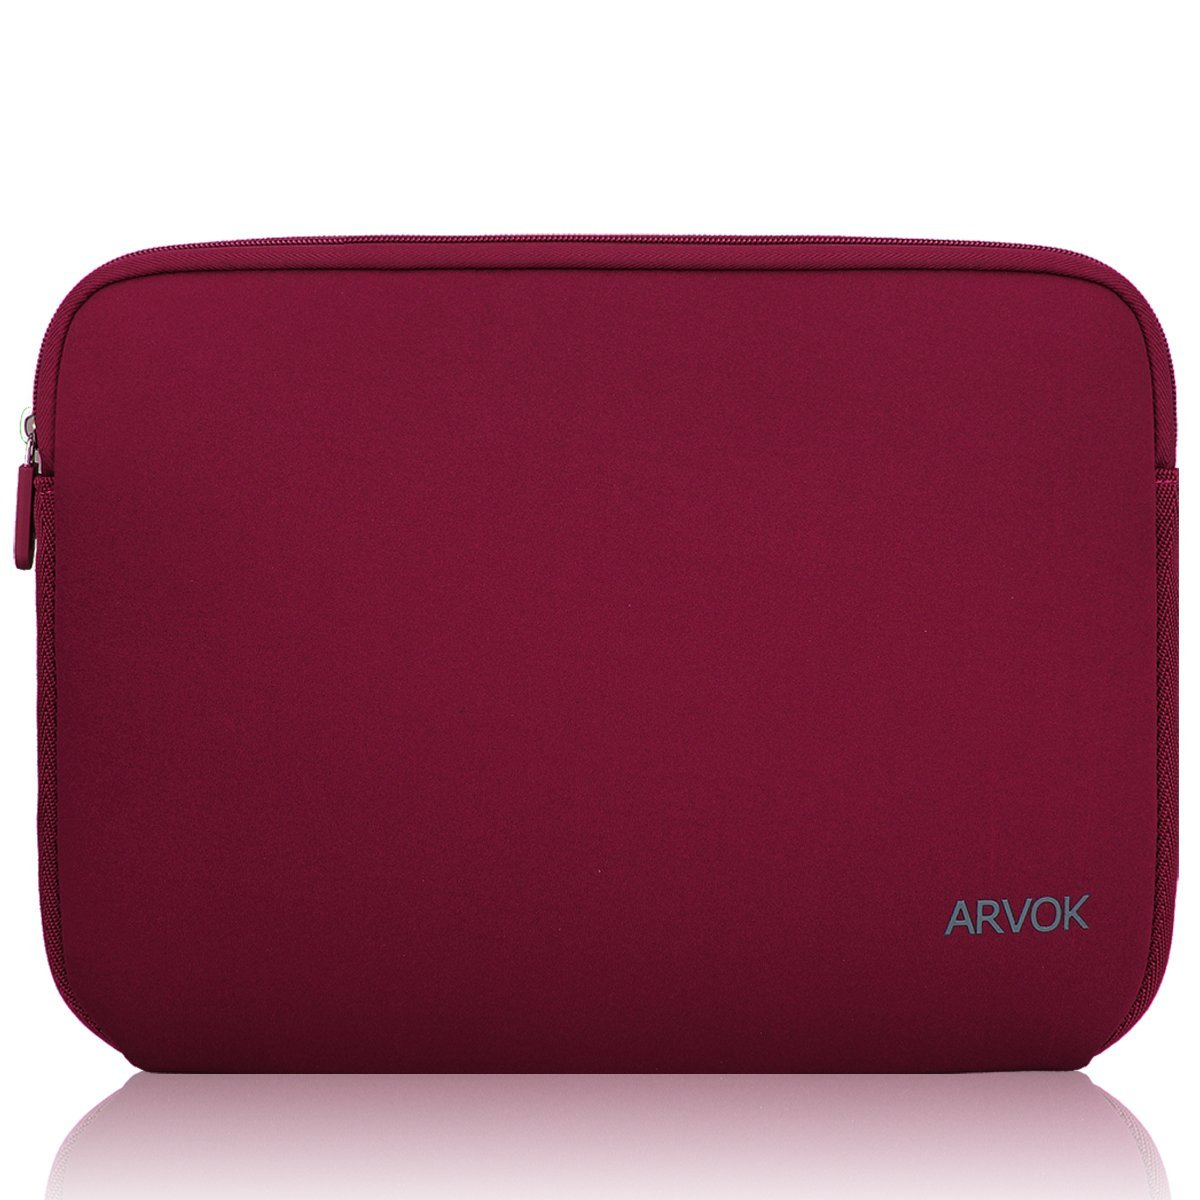 Arvok 15-15.6 Inch Laptop Sleeve Multi-color & Size Choices Case/Water-resistant Neoprene Notebook Computer Pocket Tablet Briefcase Carrying Bag/Pouch Skin Cover For Acer/Asus/Dell/Lenovo, Wine Red